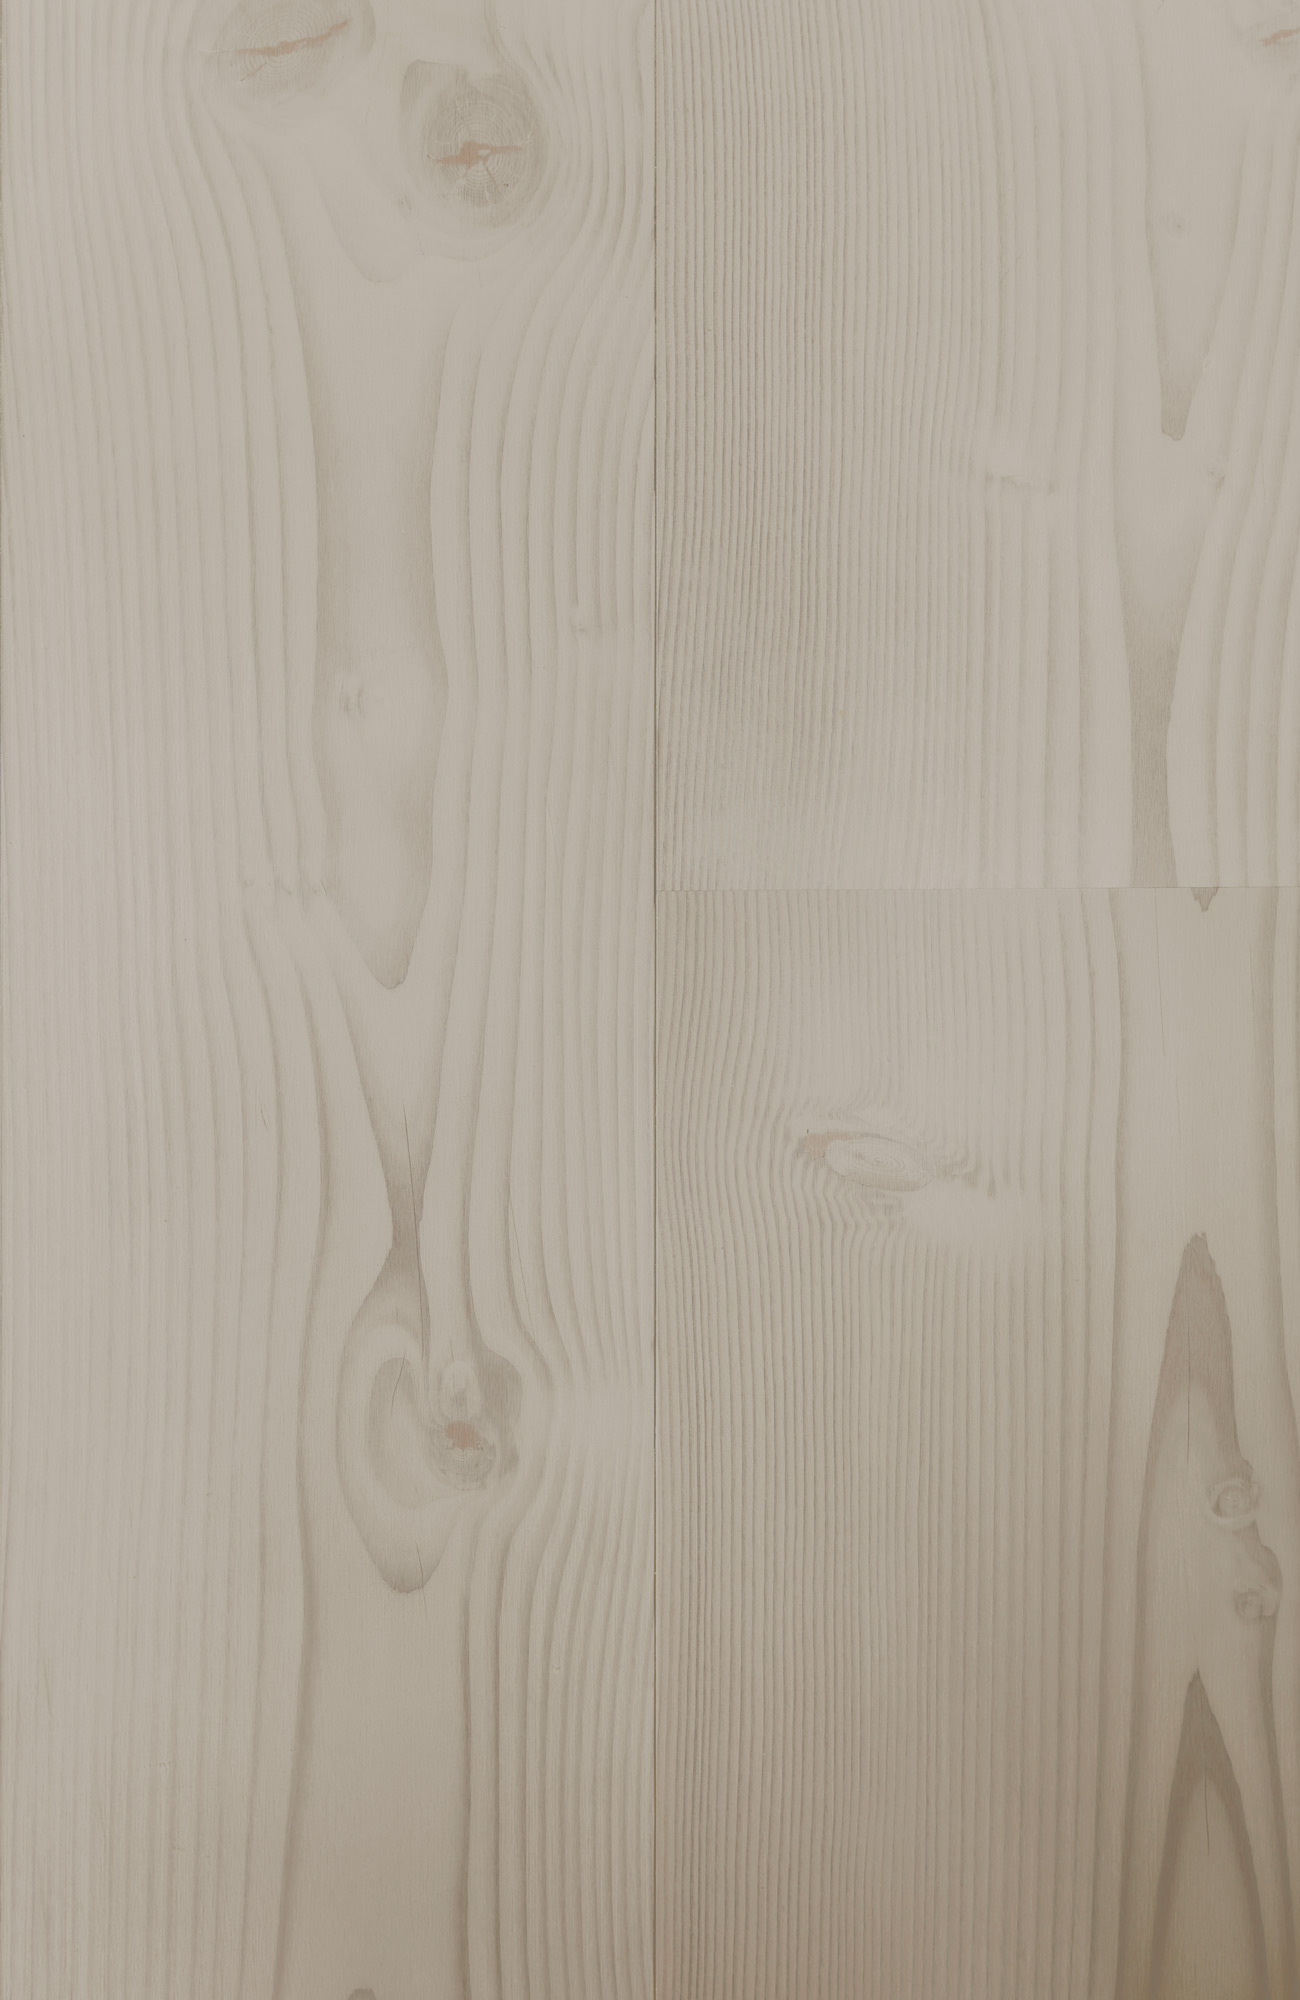 Douglas Fir White Lye Element7